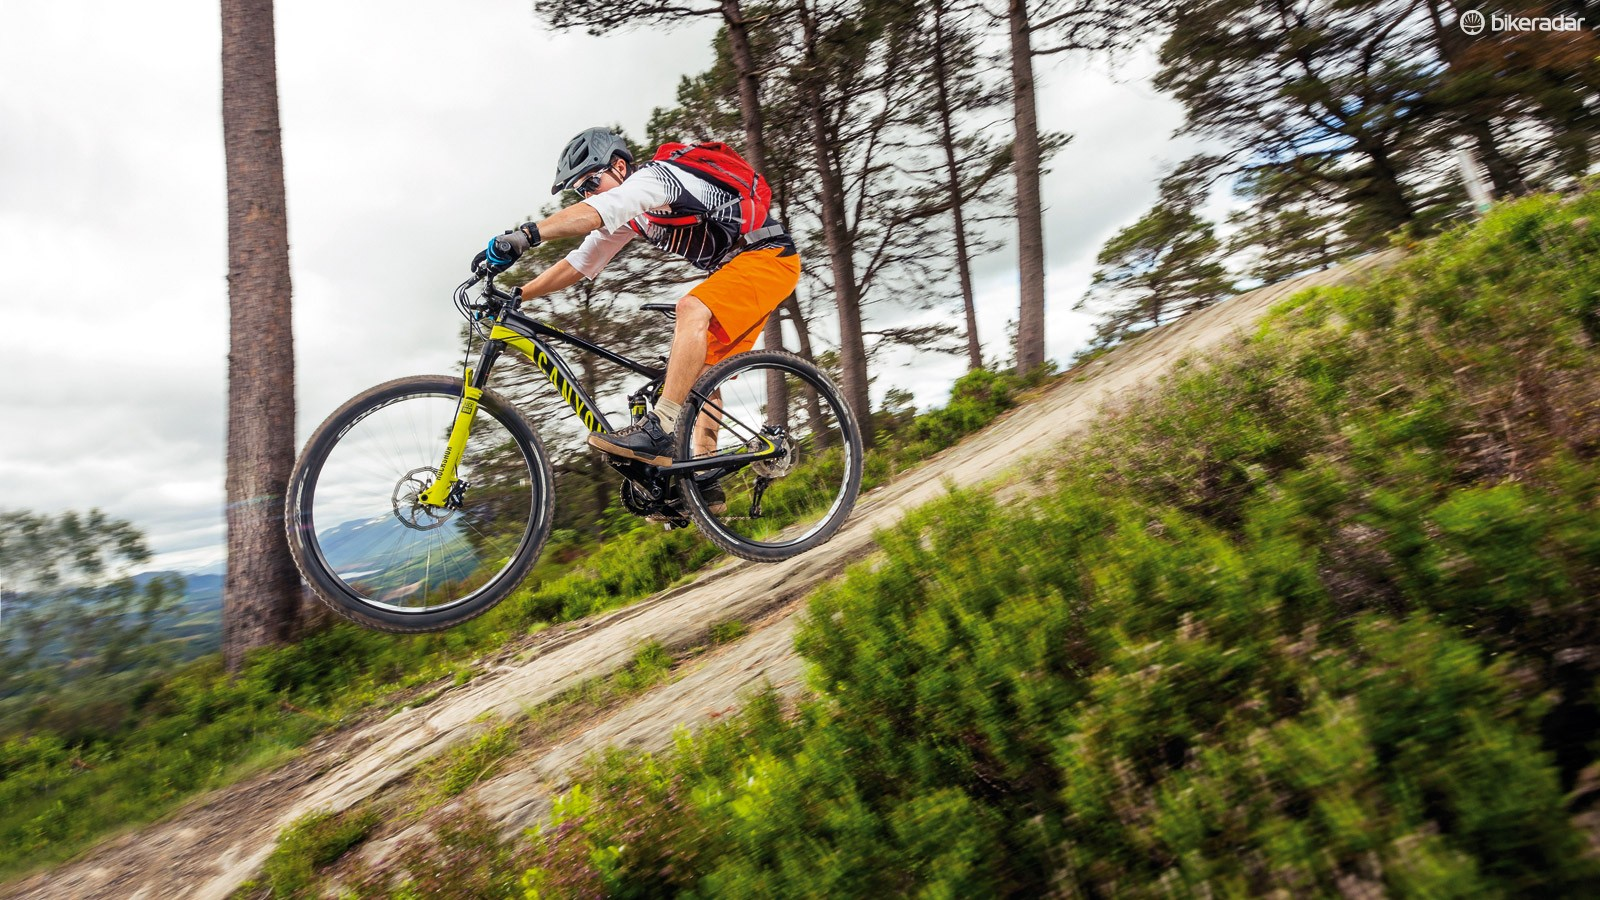 A few kit tweaks and you'll have a highly capable trail machine on your hands